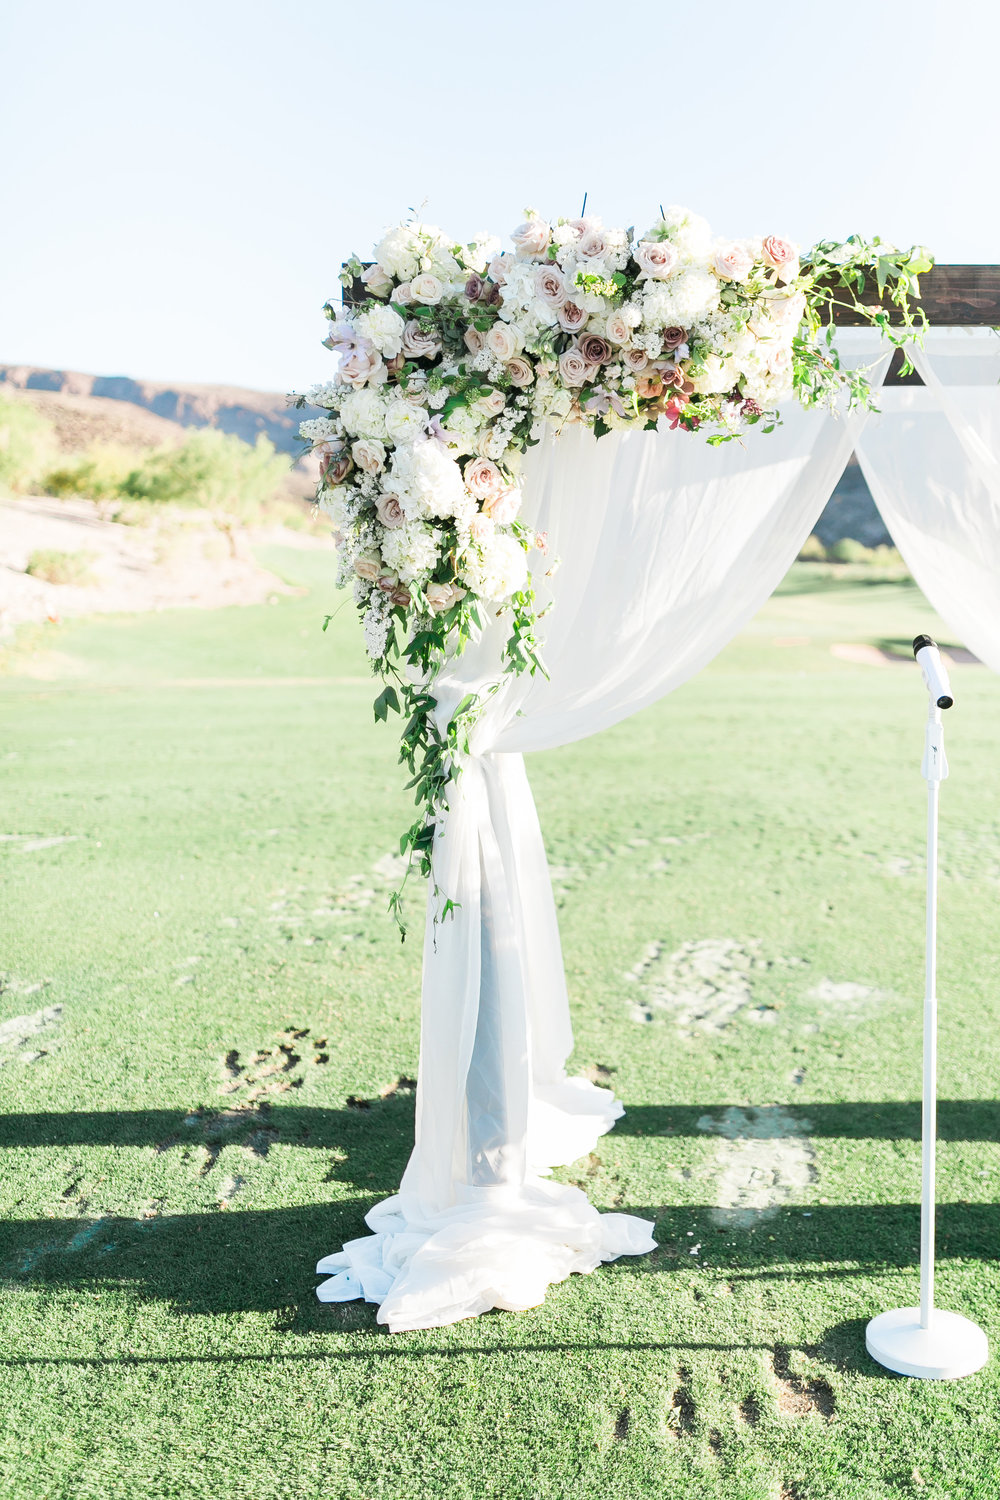 Asymmetrical florals on wedding arbor. Colorado wedding floral designer, Layers of Lovely